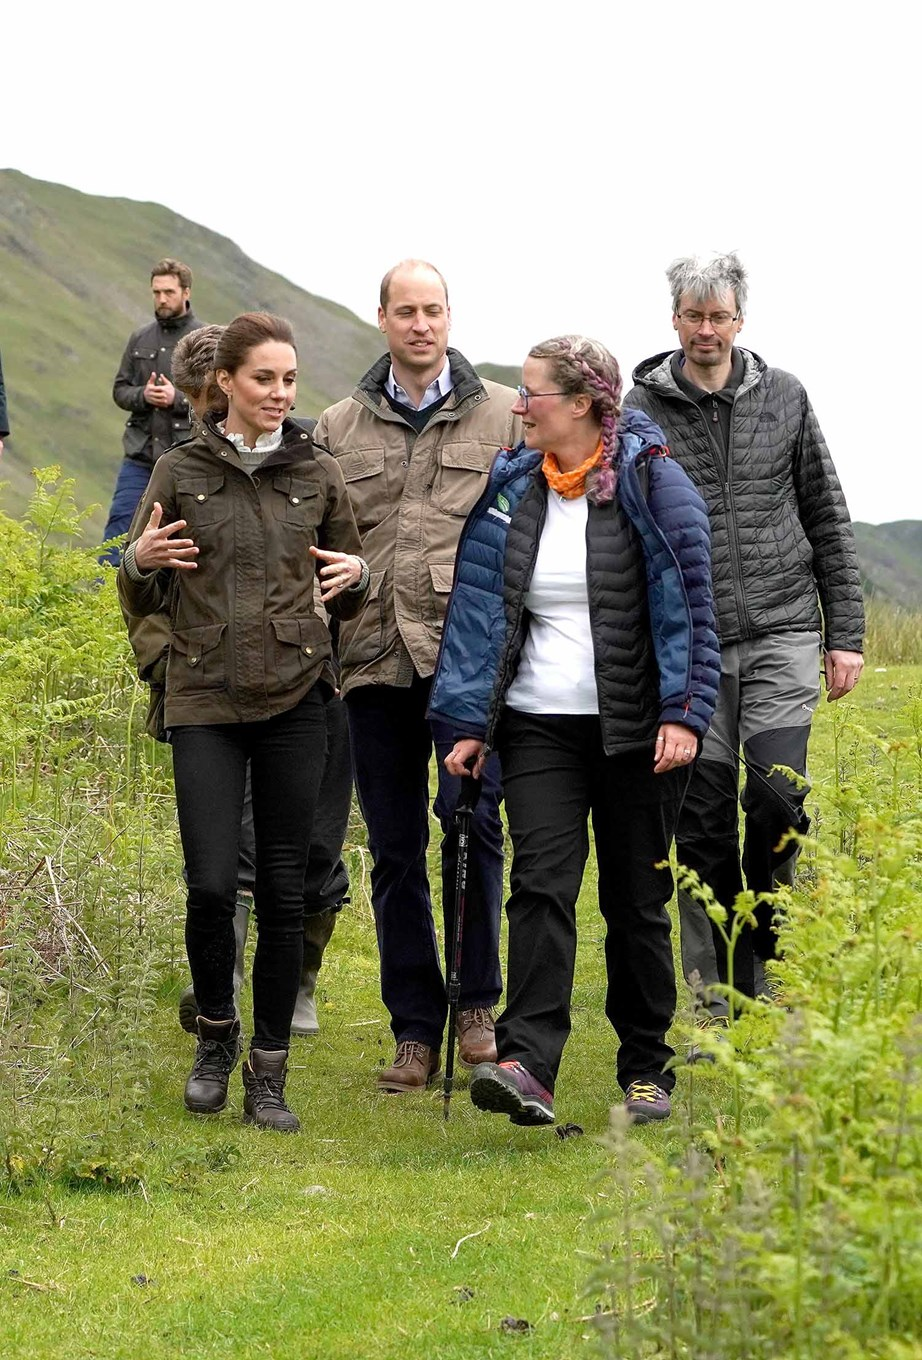 William and Kate take take a walk around a farm in Patterdale. *(Image: Getty)*